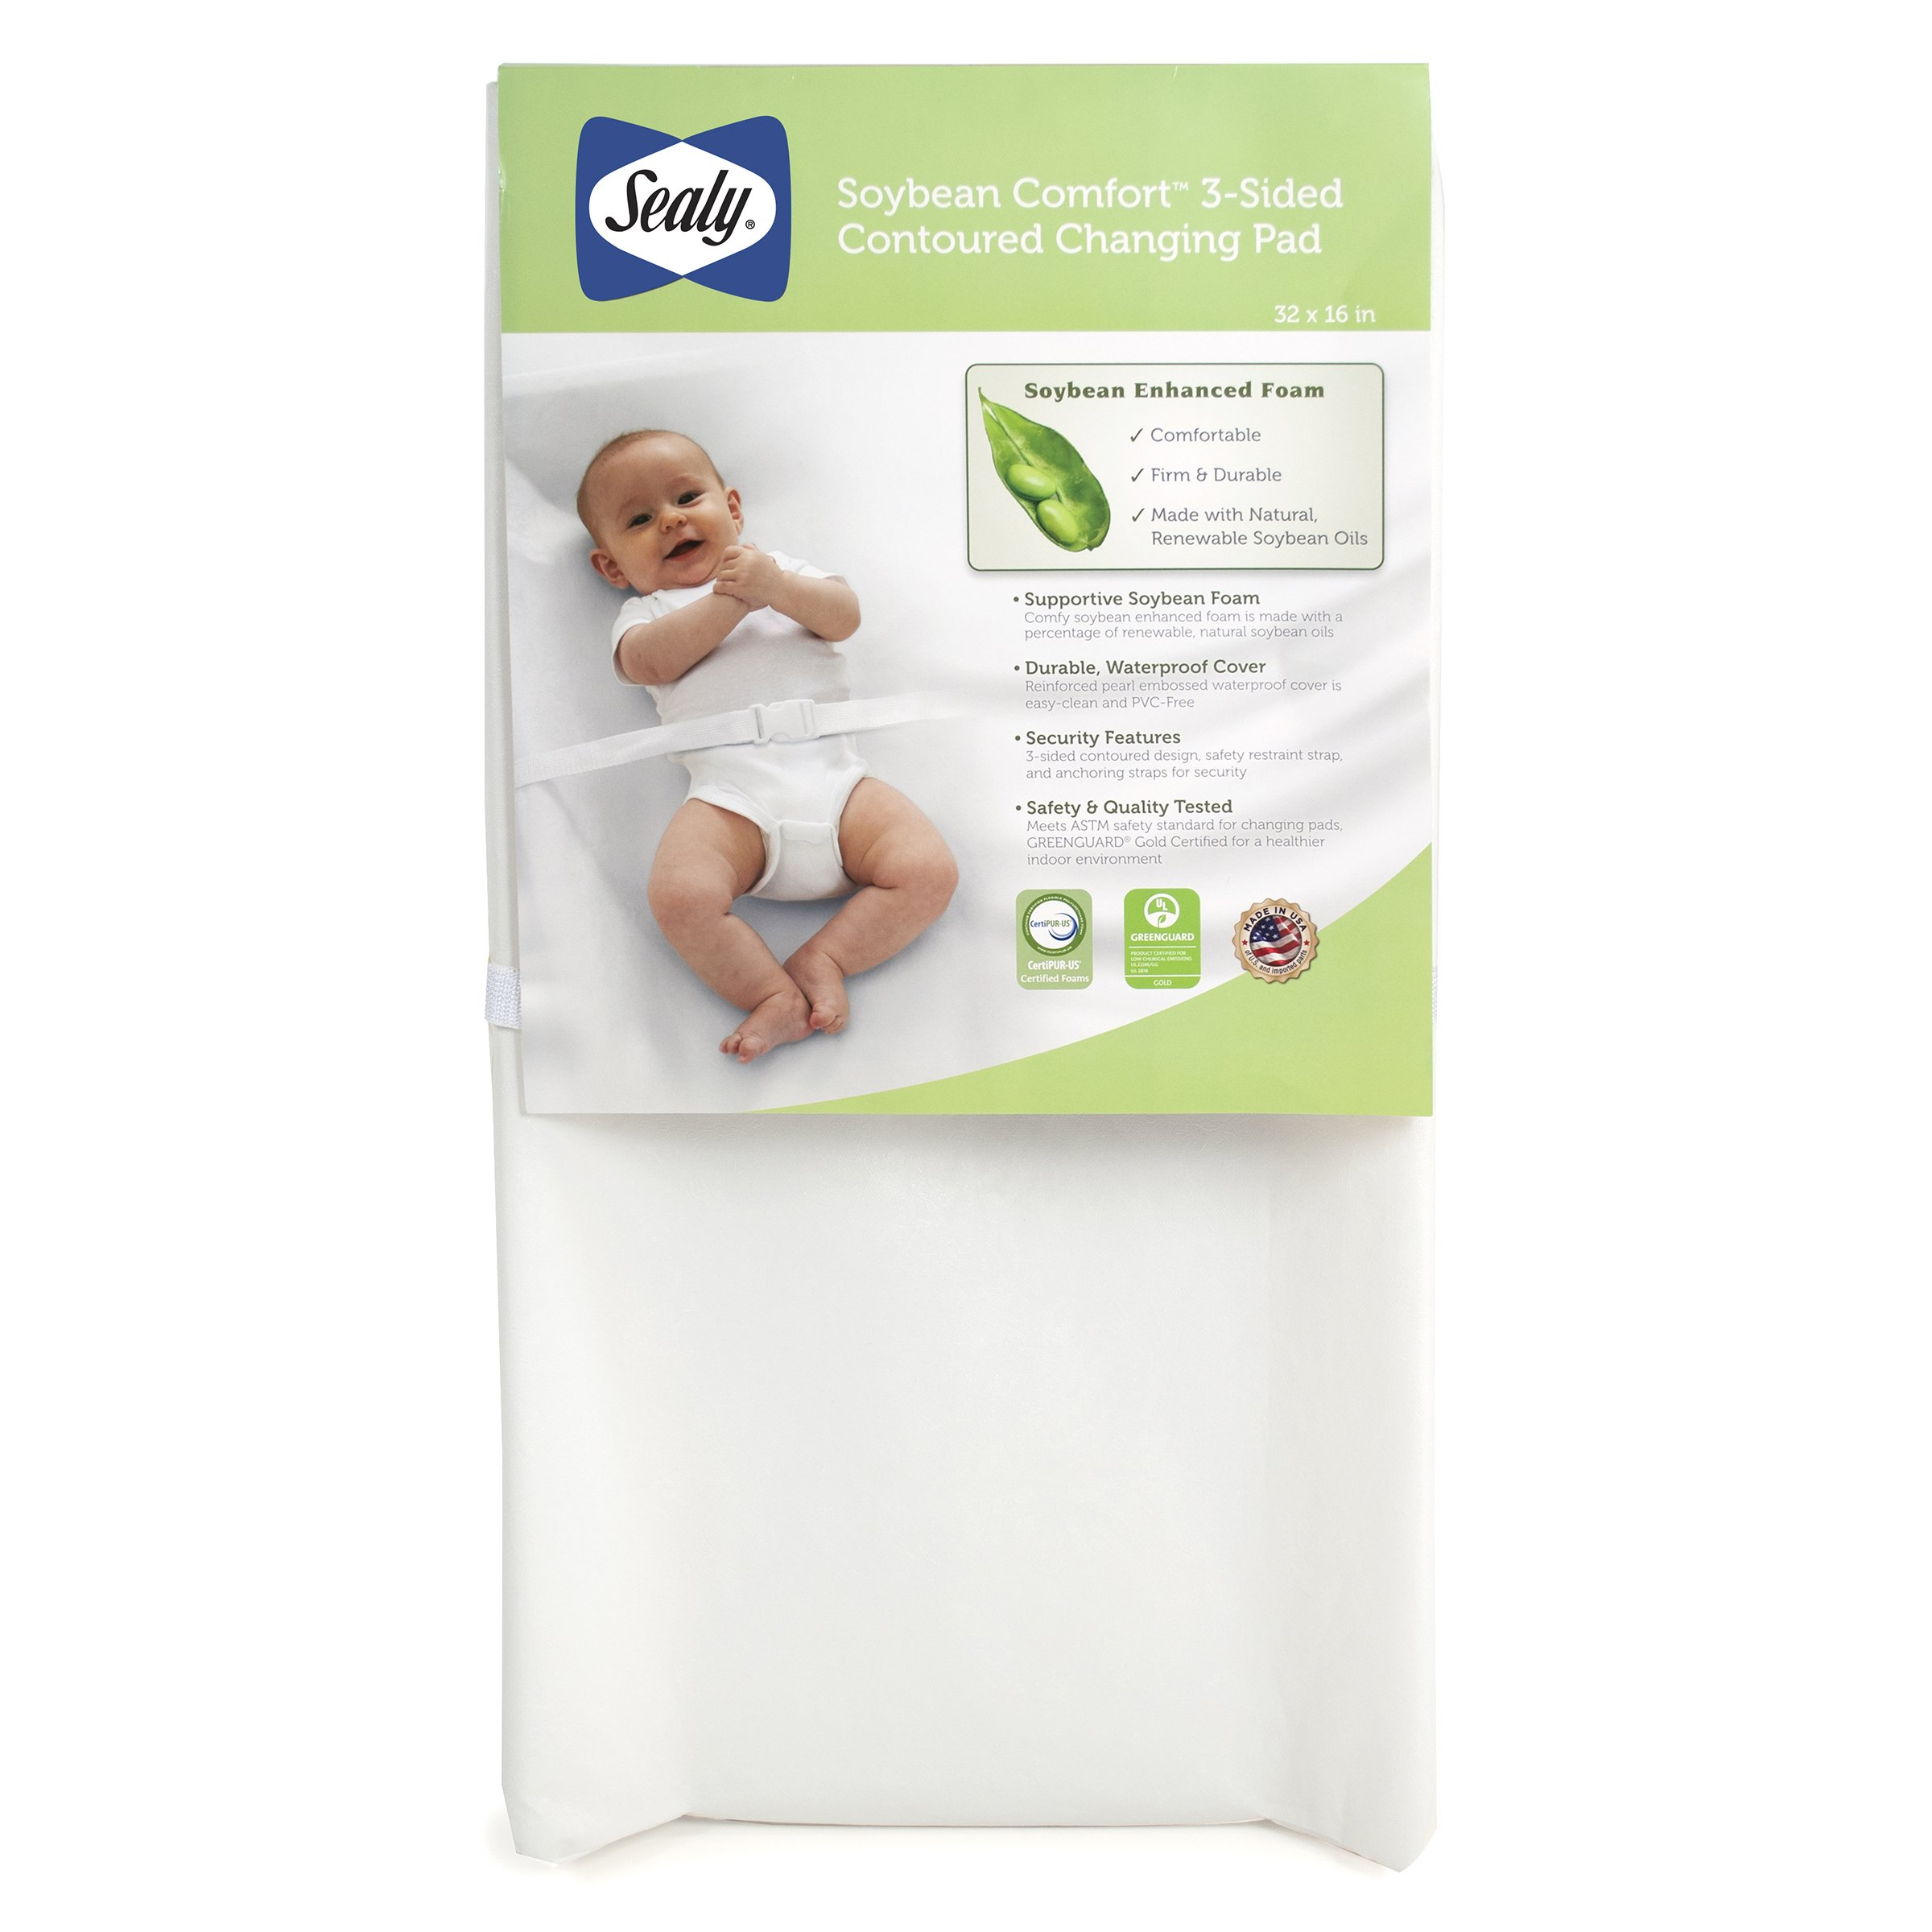 Sealy Baby Soybean Comfort 3-Sided Contoured Diaper Changing Pad for Dresser or Changing Table, White, 32'' x 16'' by Sealy